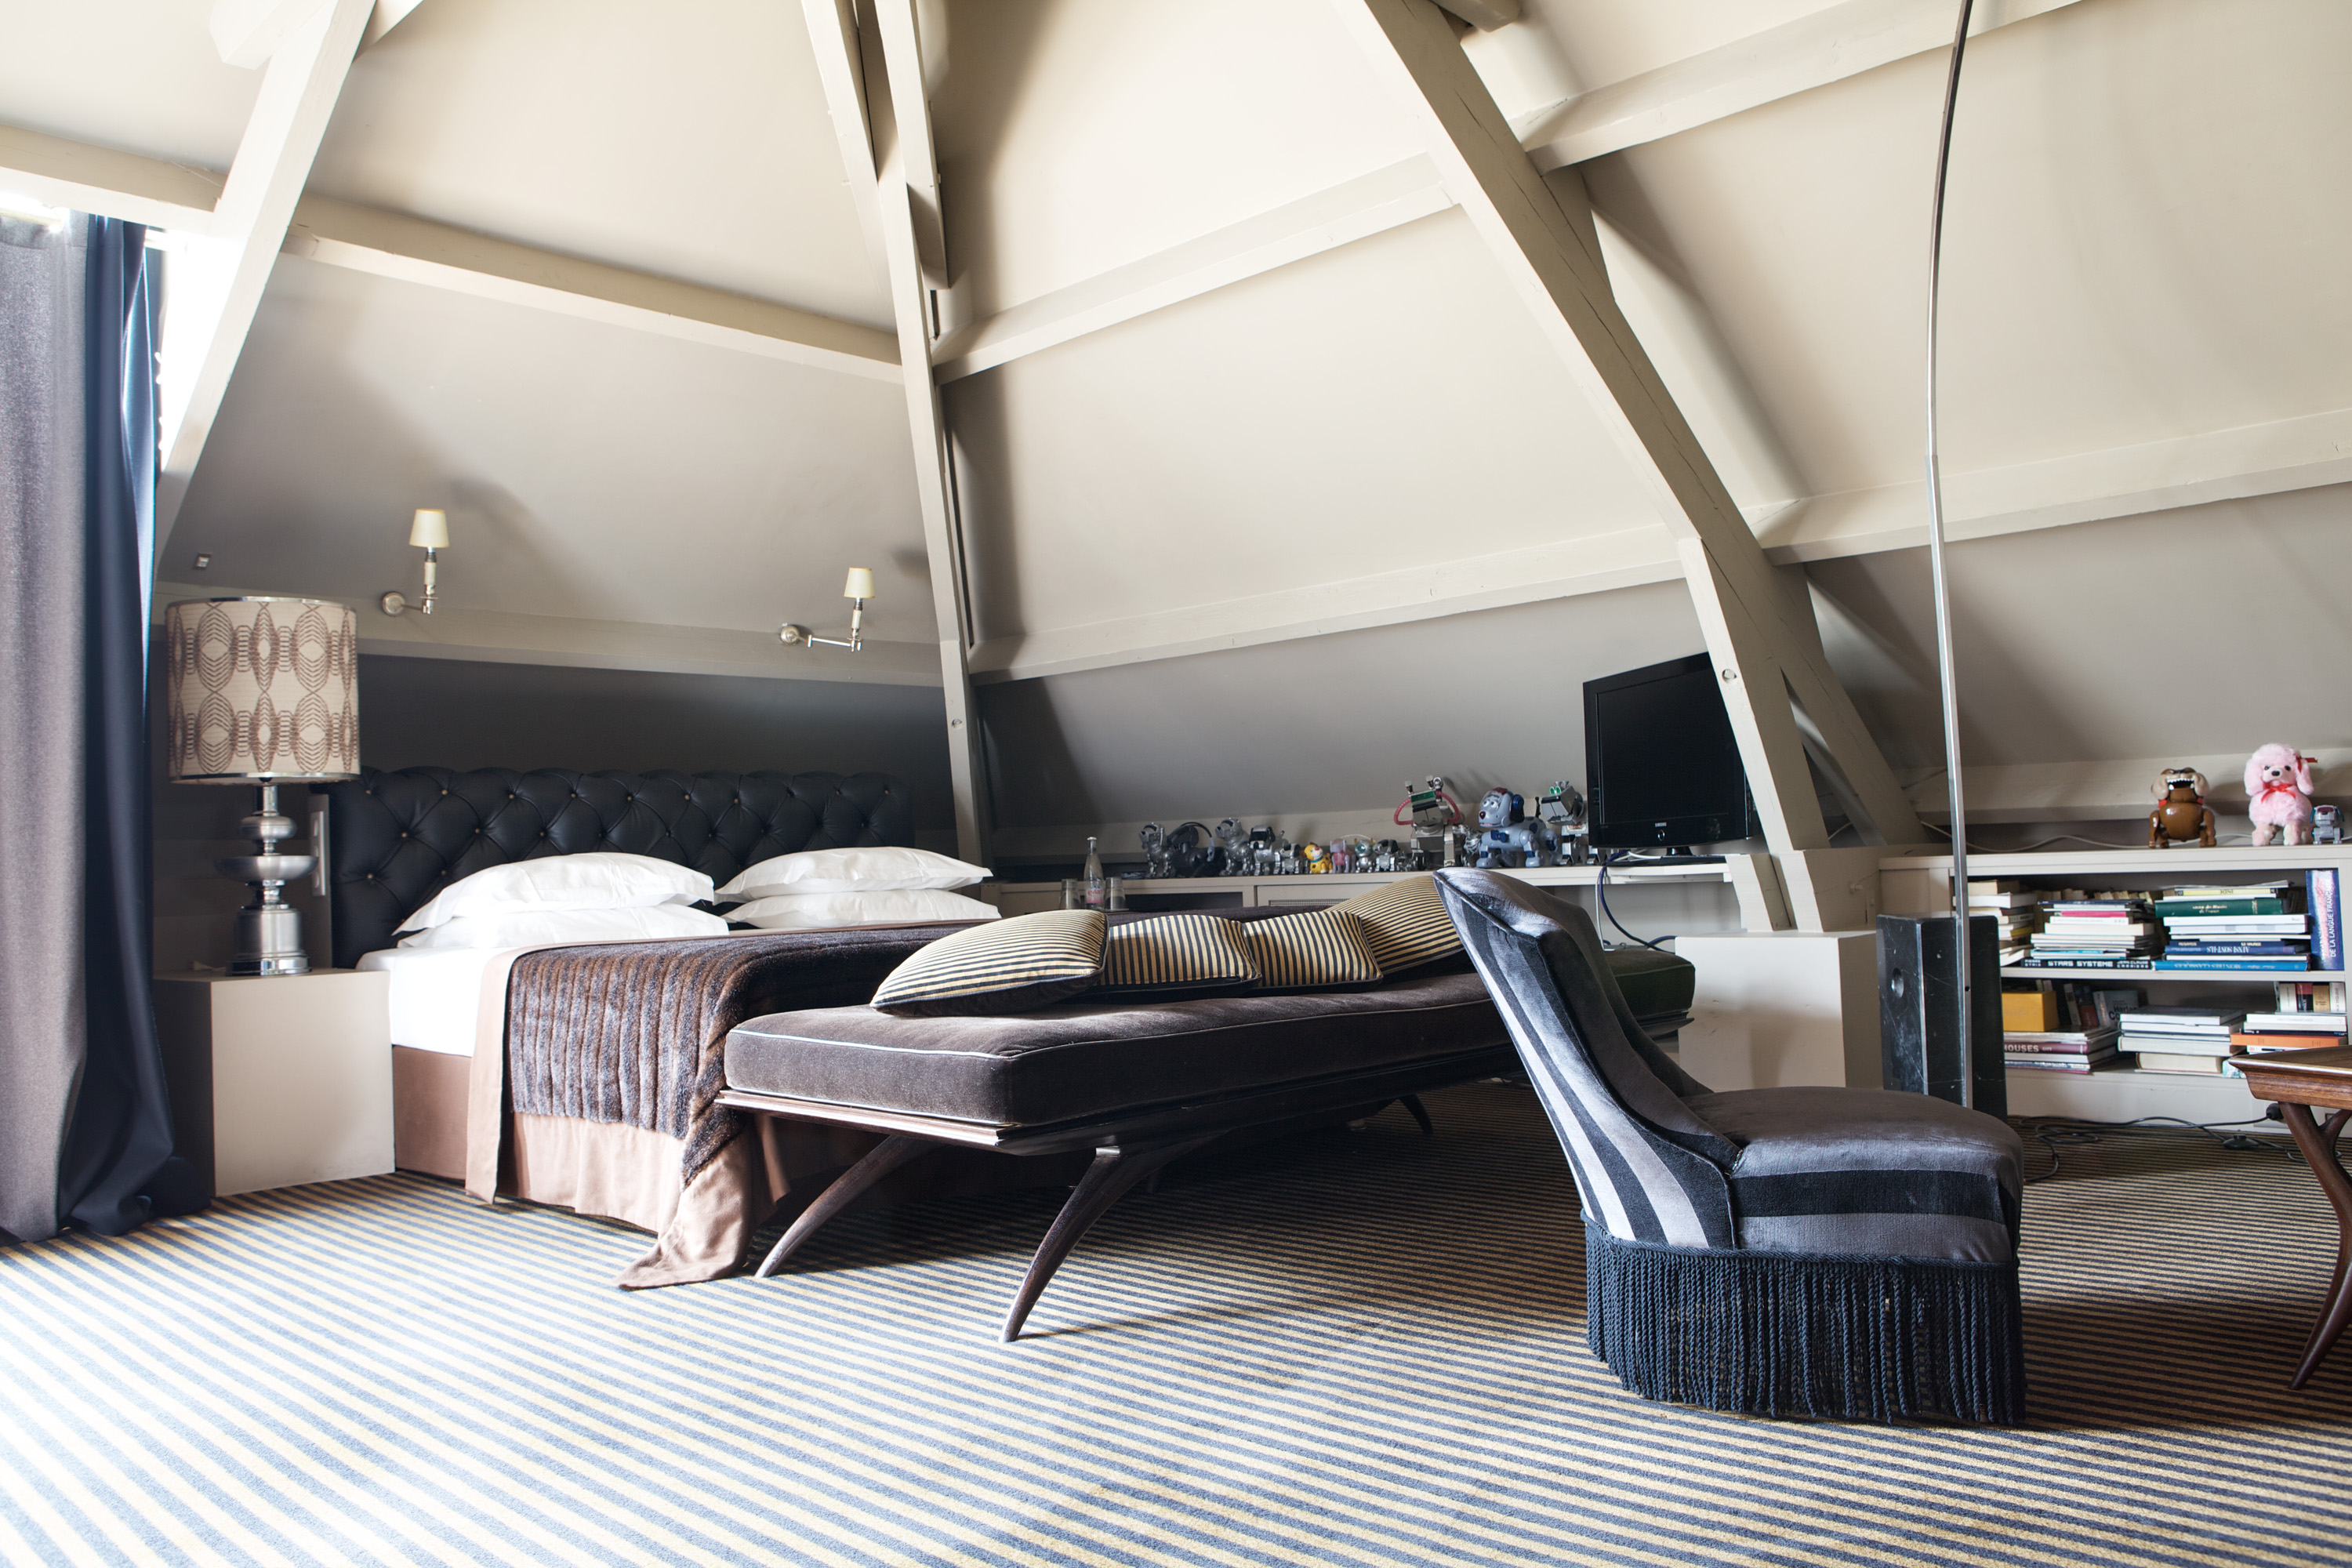 Hotel particulier montmartre a parigi in the mood for design for Design hotel parigi